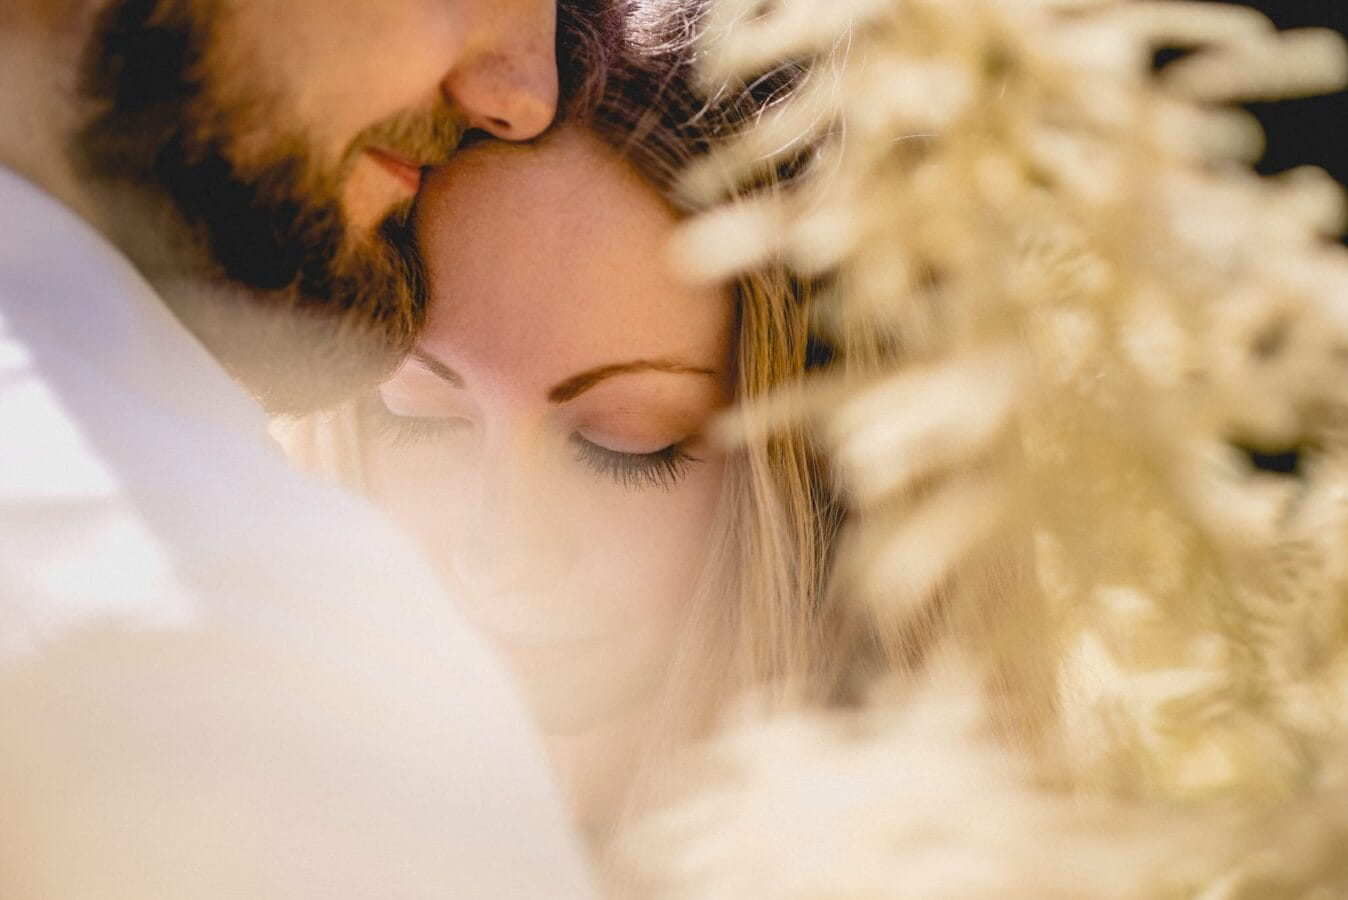 Find the best wedding photographer for you in 7 easy steps